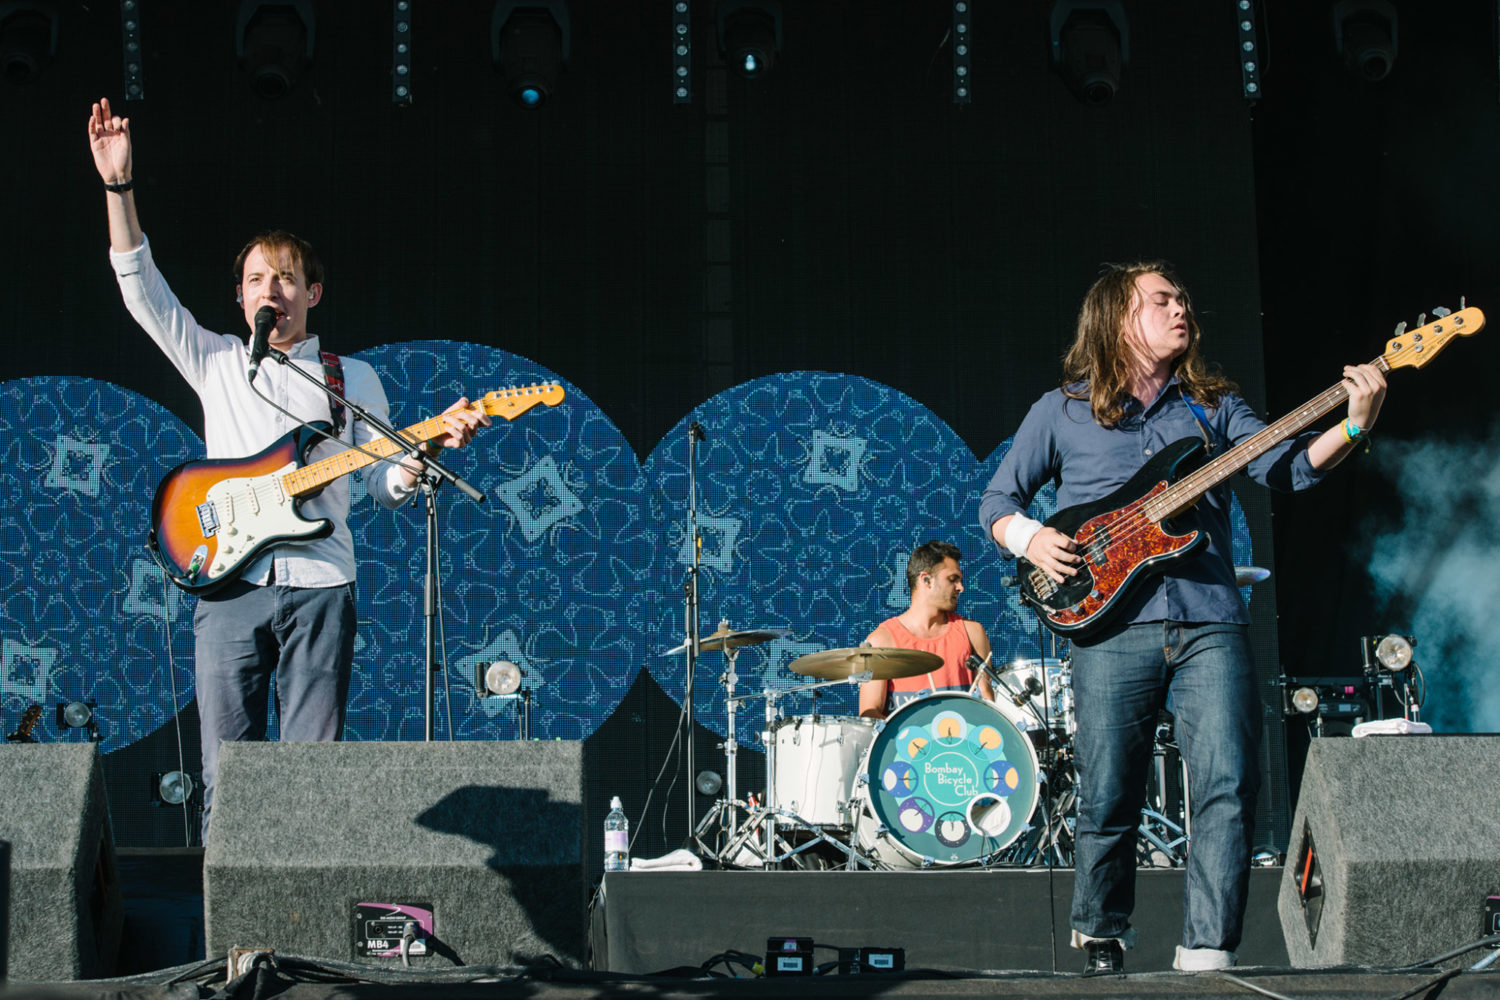 Bombay Bicycle Club announce festival warm-up shows